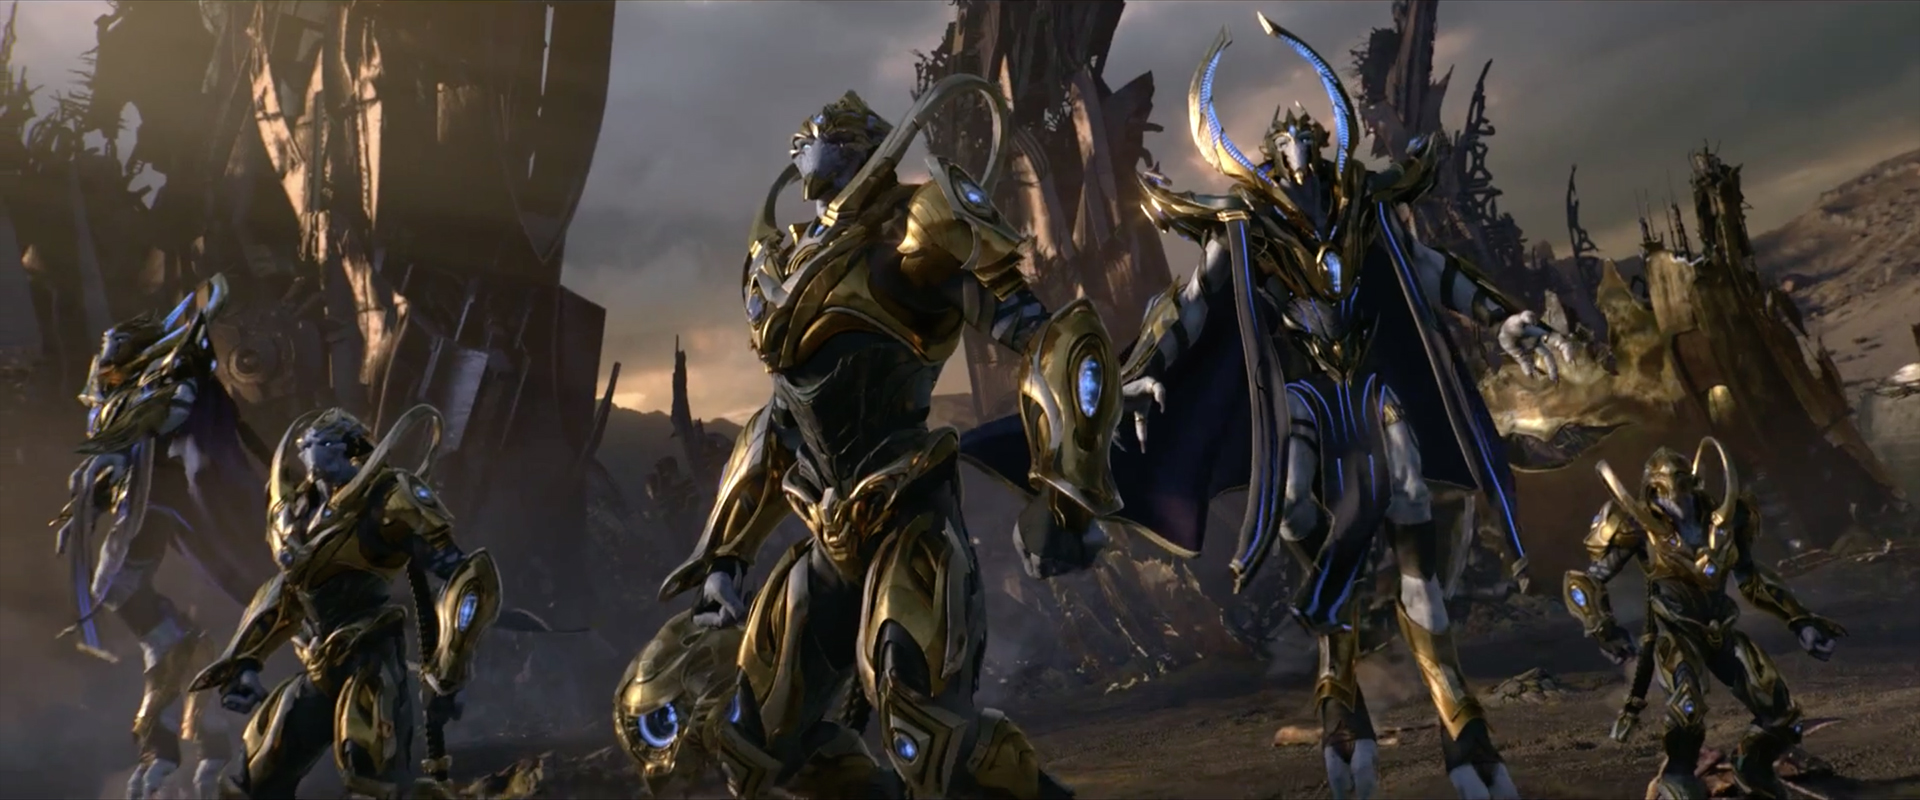 Legacy Of The Void Wallpapers: StarCraft II: Legacy Of The Void Opening Cinematic By